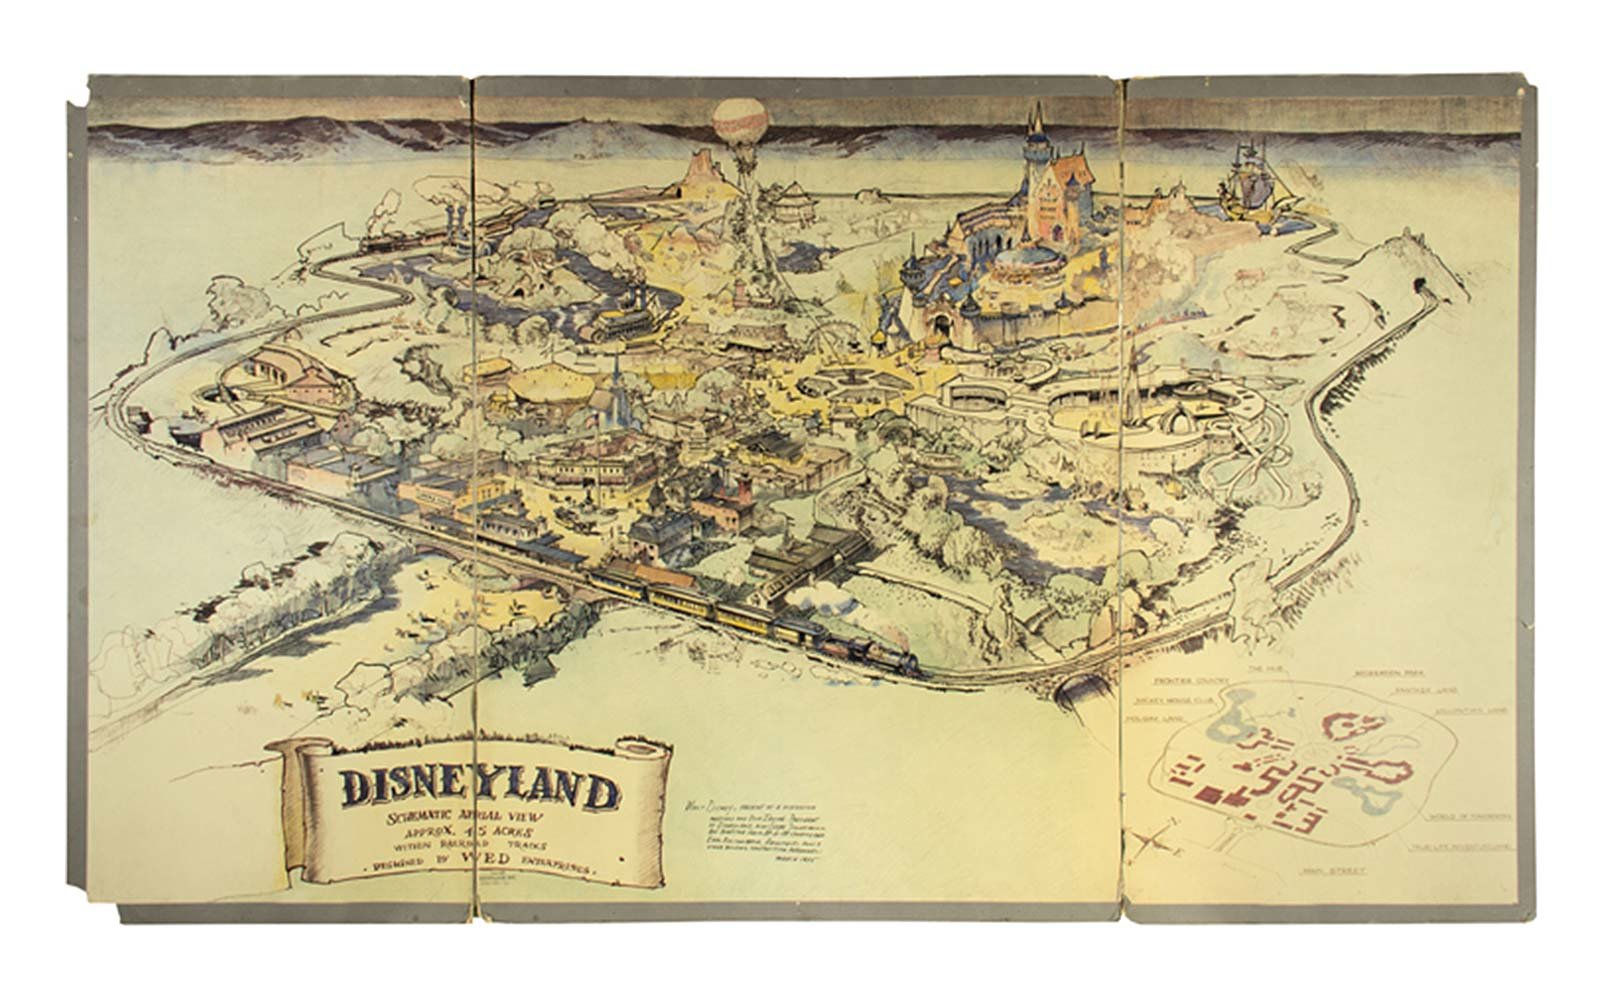 Disneyland Locations World Map.The Map Of Disneyland That Walt Disney Designed In 1953 Is Going To